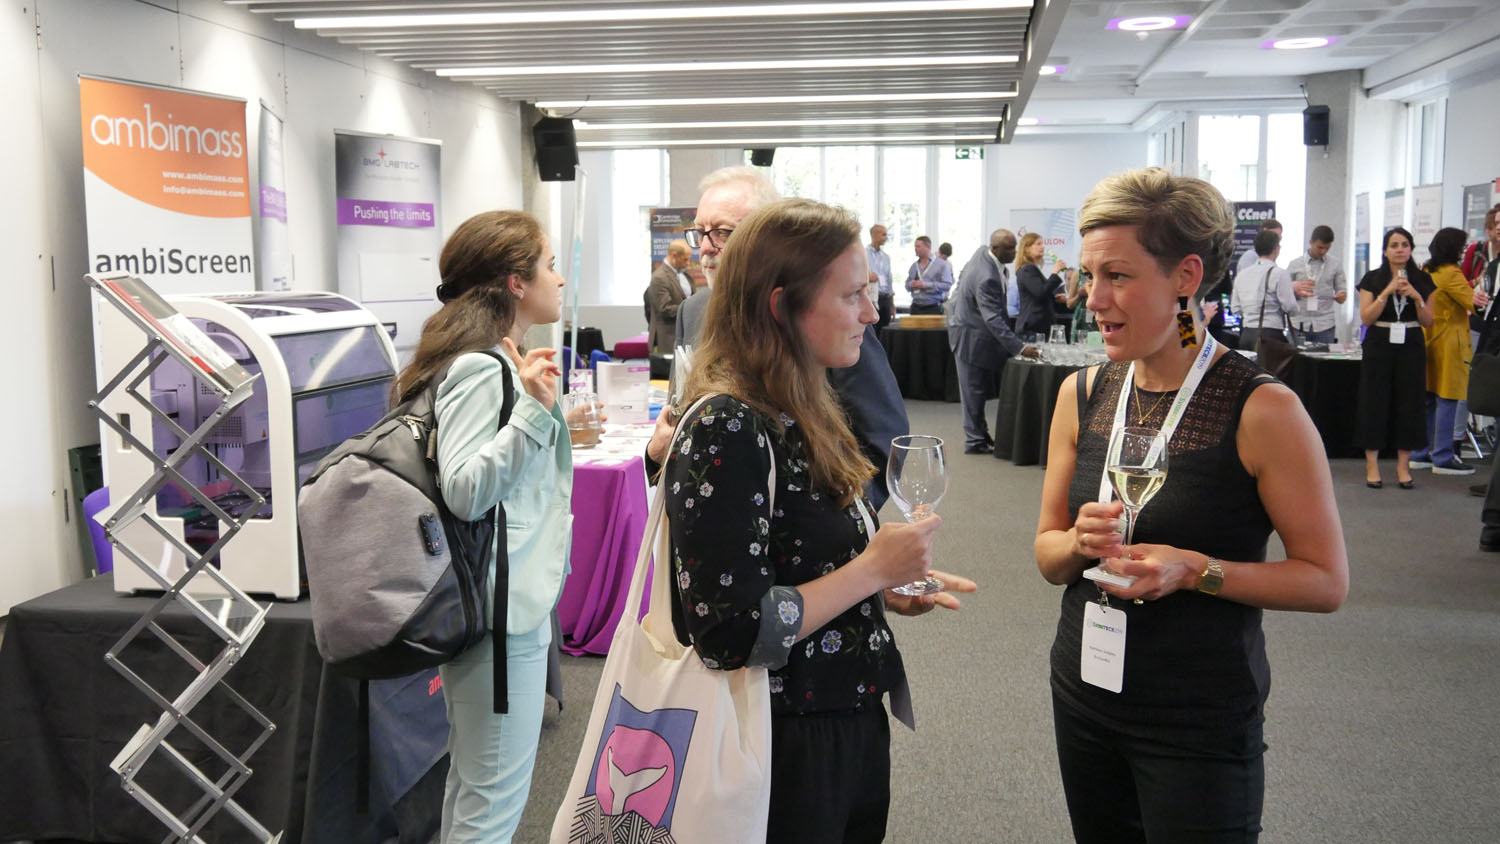 New connections forged at SynbiTECH 2019